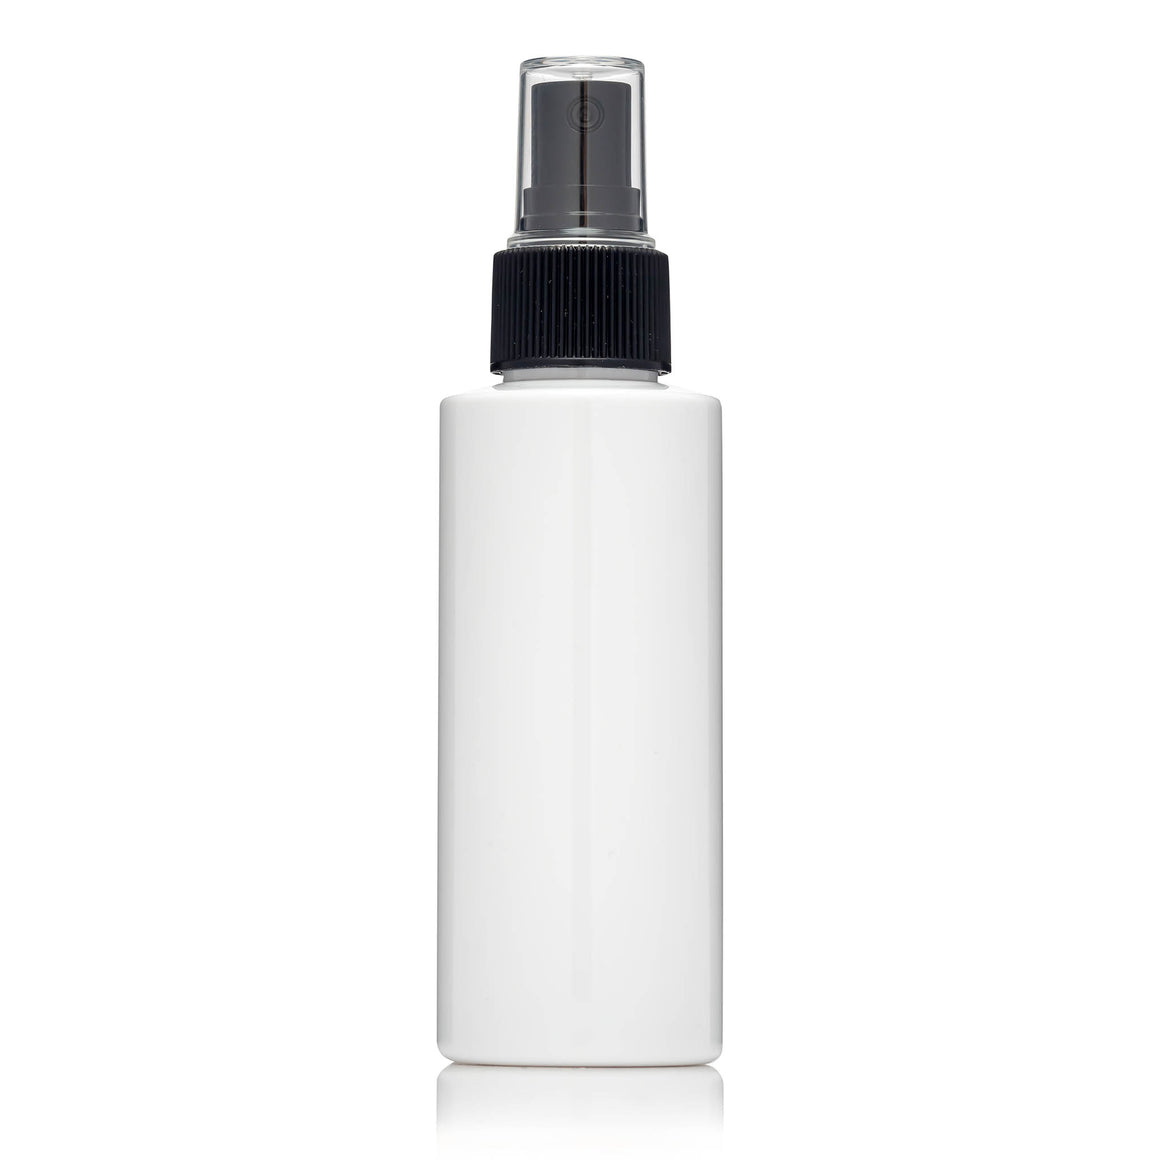 Enzyme Toning Mist - 125ml Classic